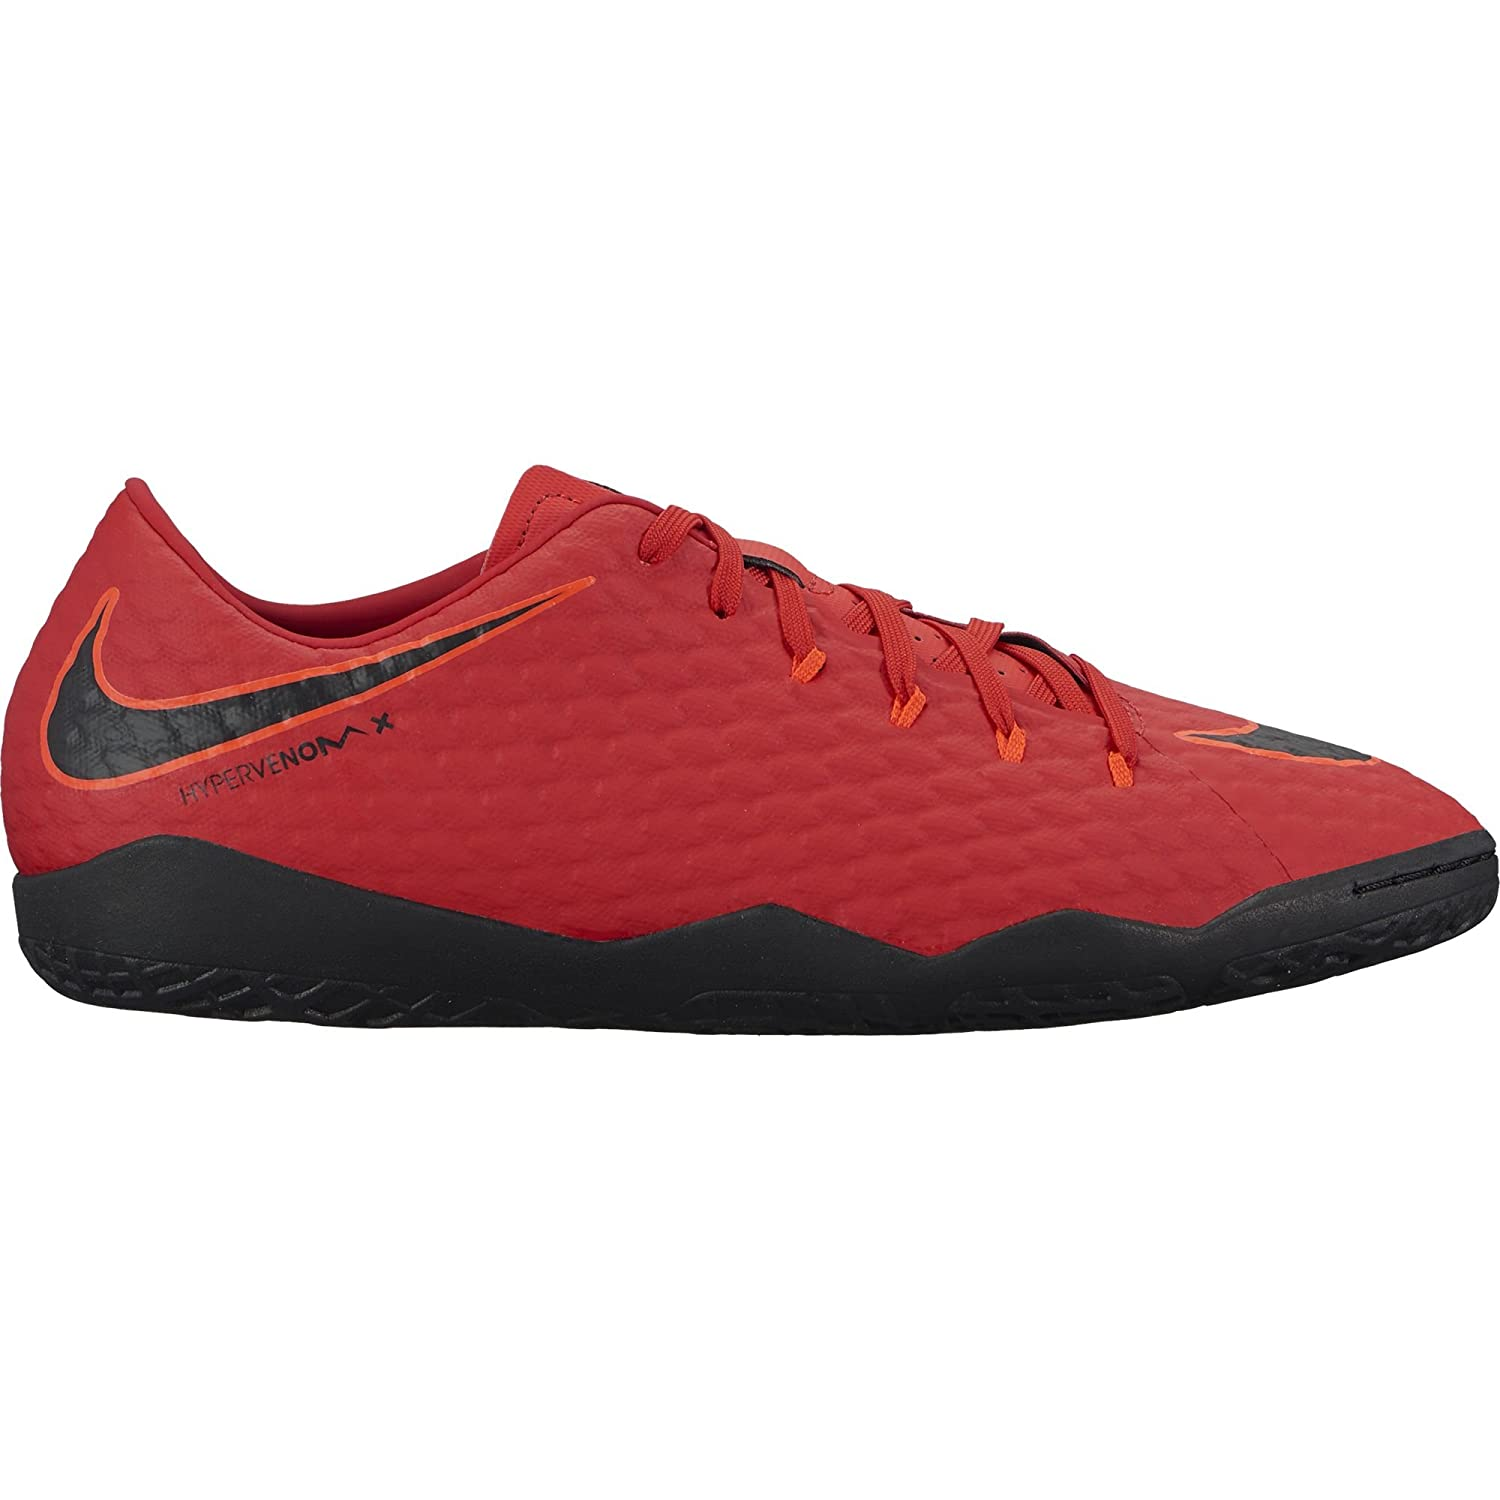 30372d7fd28c Amazon.com | Nike Mens Hypervenomx Phelon III IC Indoor Soccer Shoes  (University RED/Black) (Synthetic, 12) | Soccer